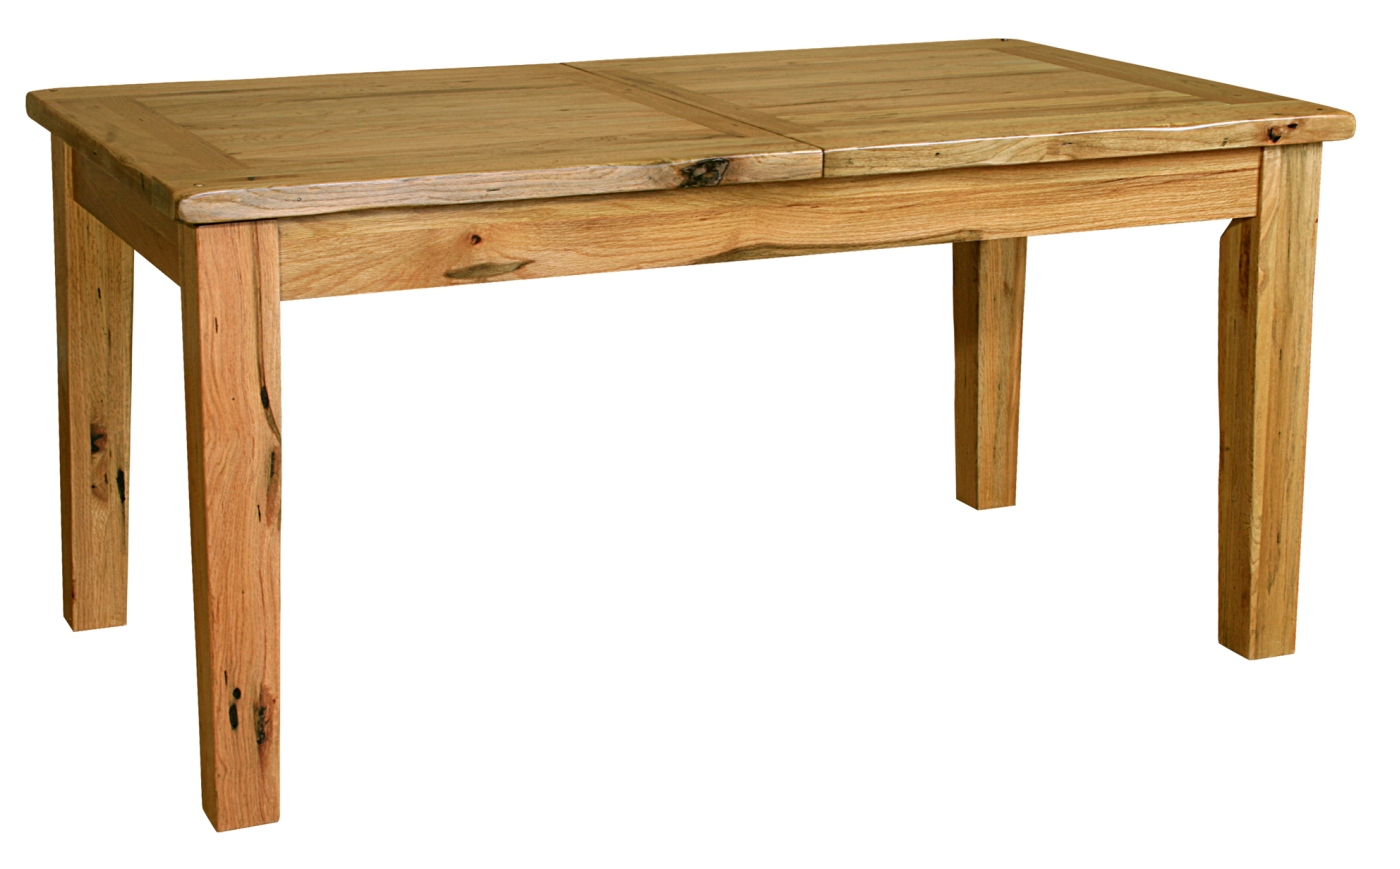 Solid Oak Dining Room Furniture ~ Tuscany solid oak dining room furniture large extending